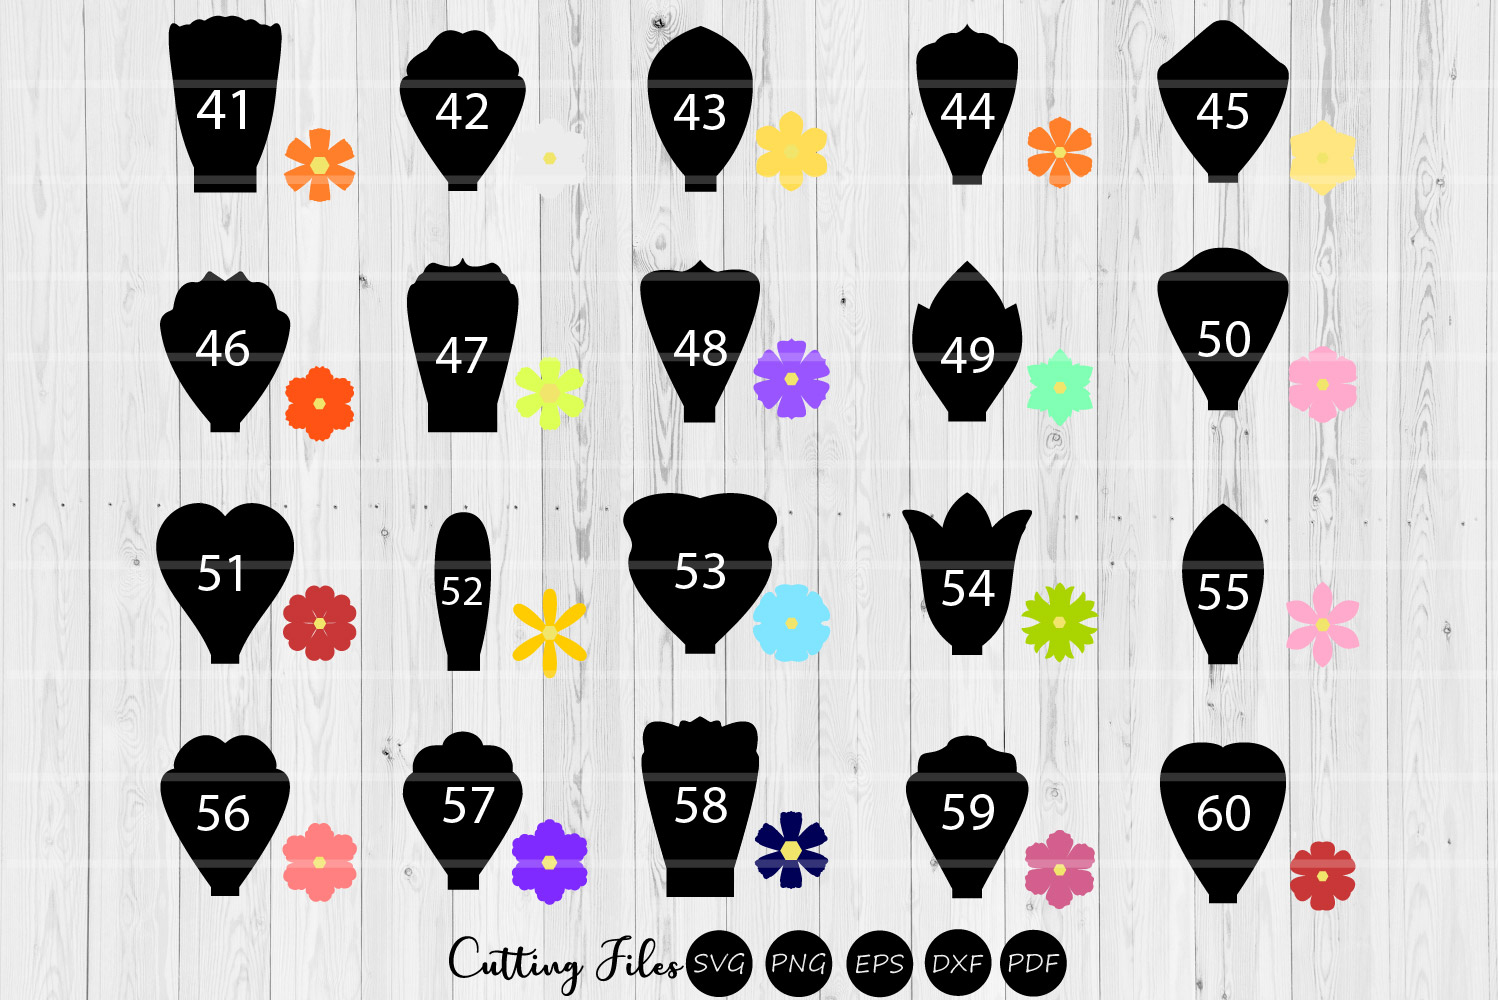 Paper Flowers Templates bundle 40 to 60|A1-40 | DIY projects example image 1